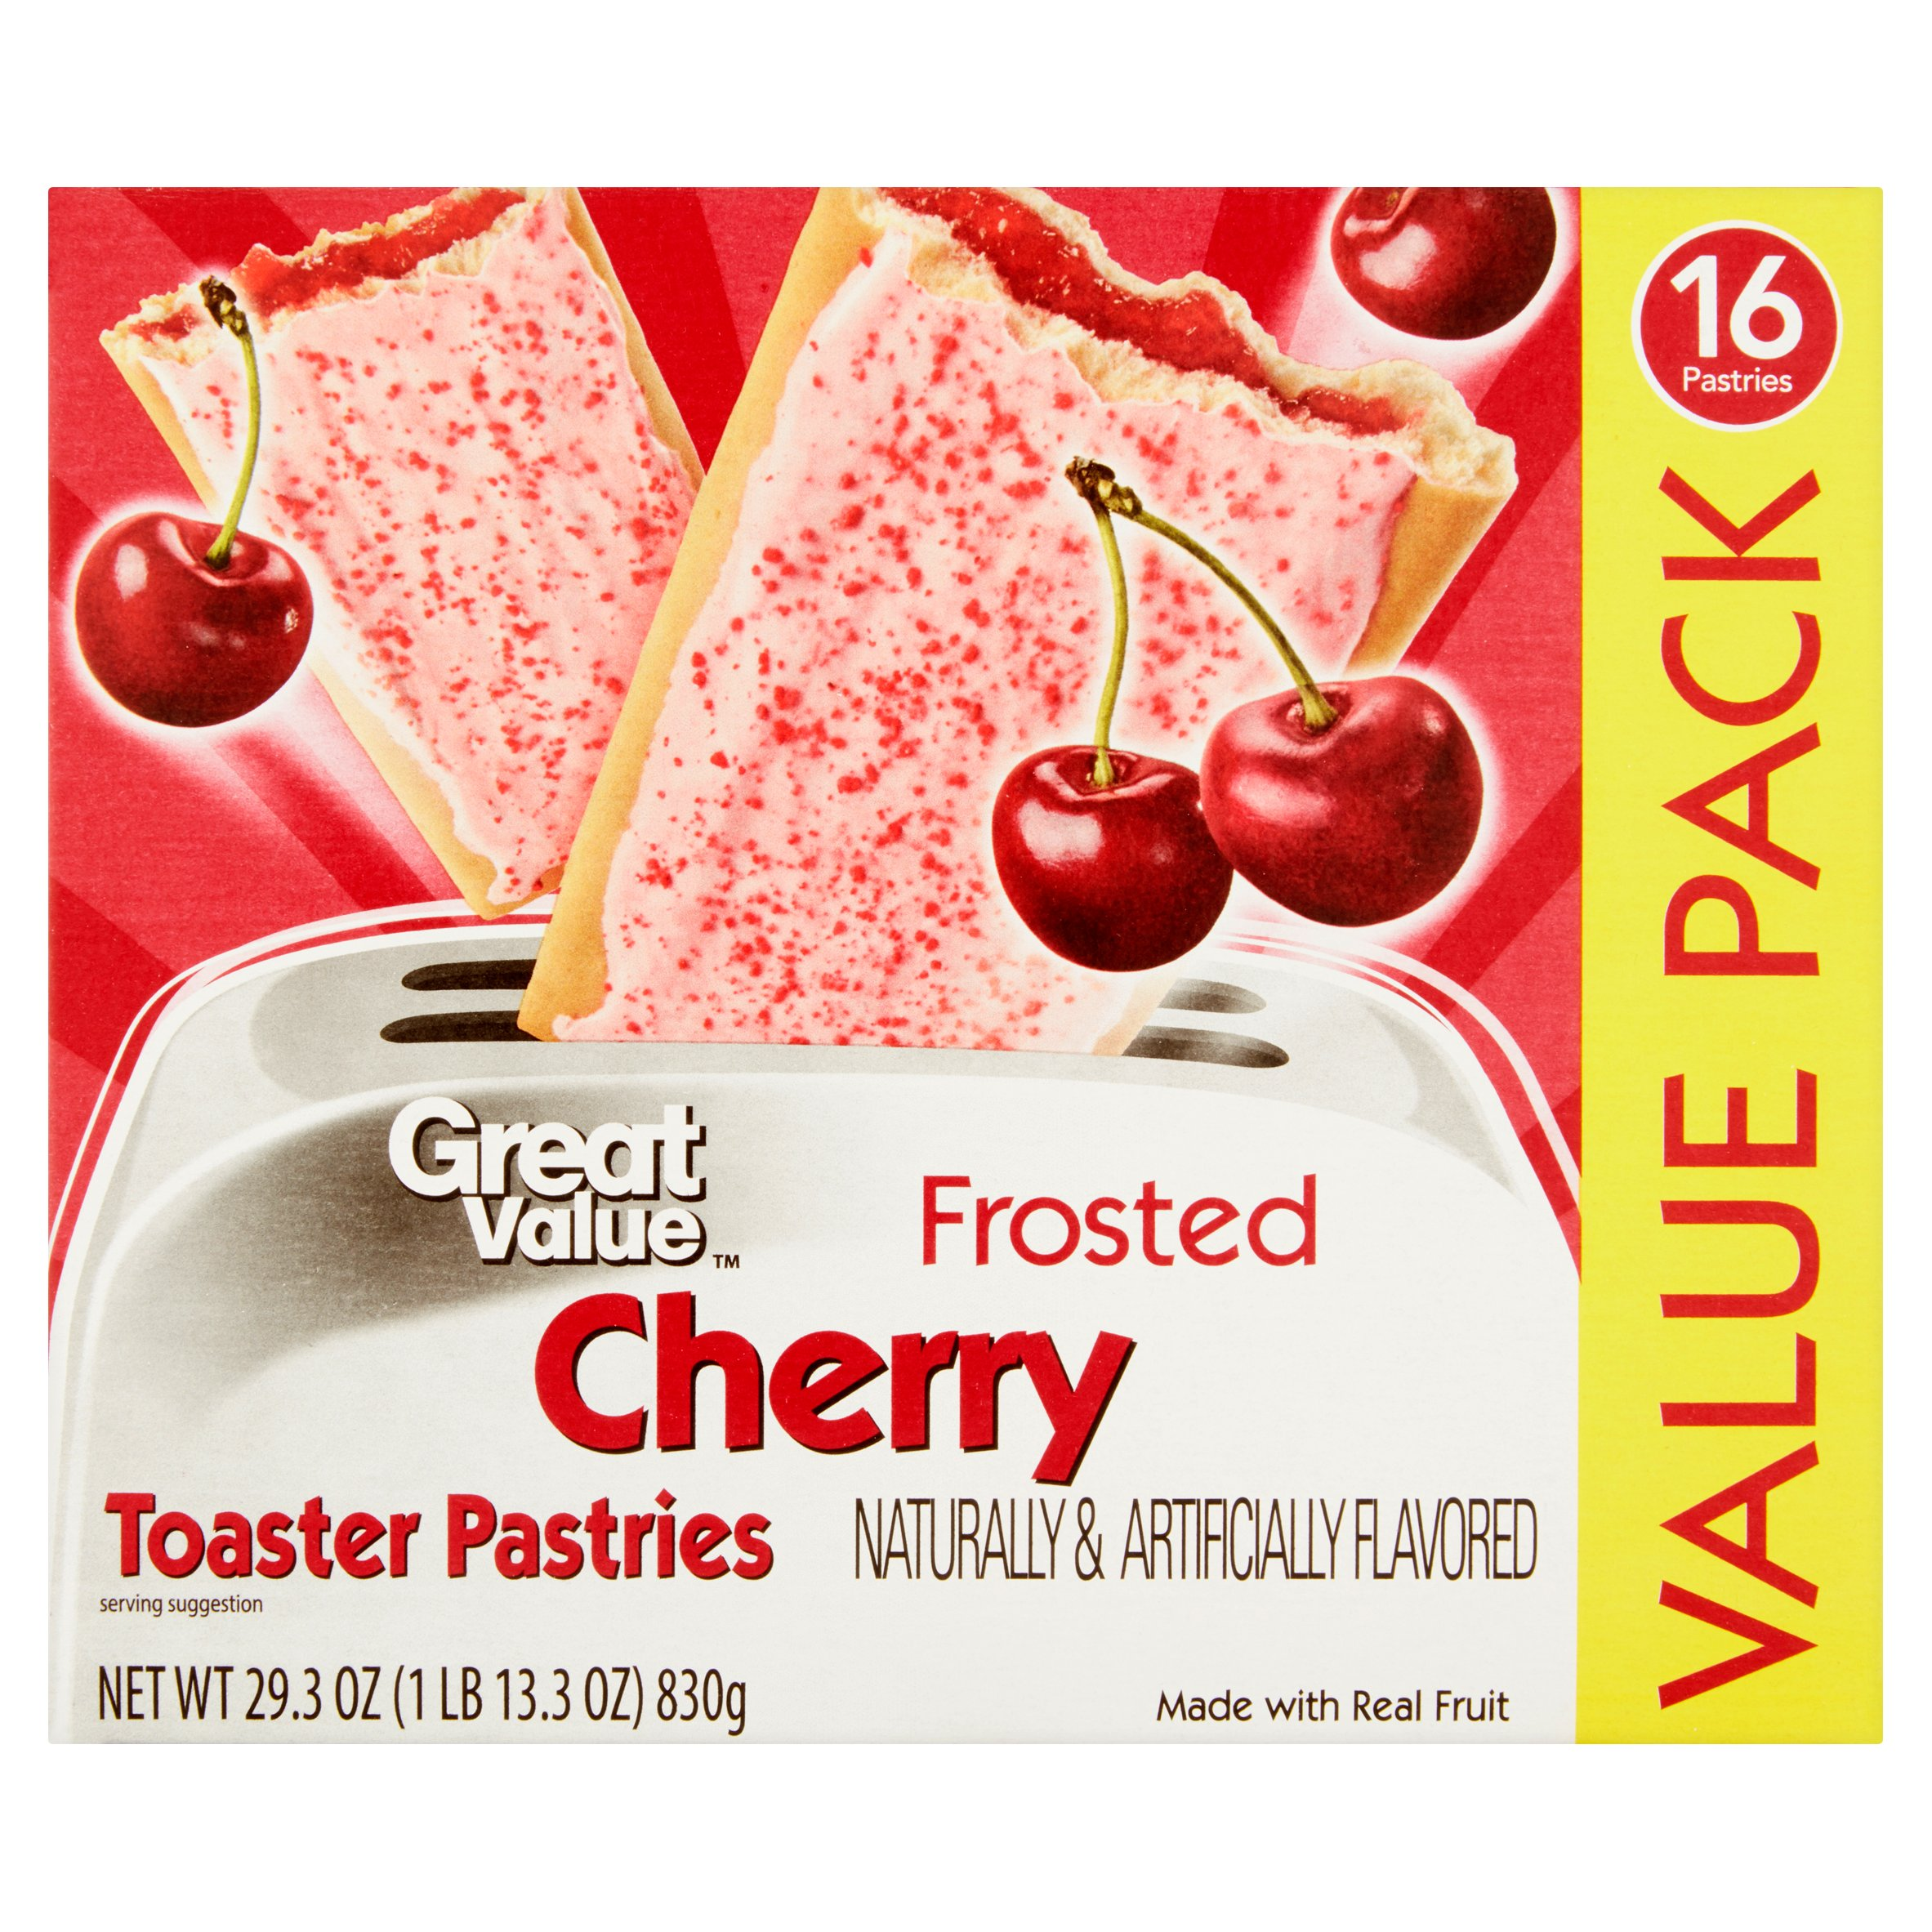 Great Value Frosted Cherry Toaster Pastries, 16 ct by Wal-Mart Stores, Inc.